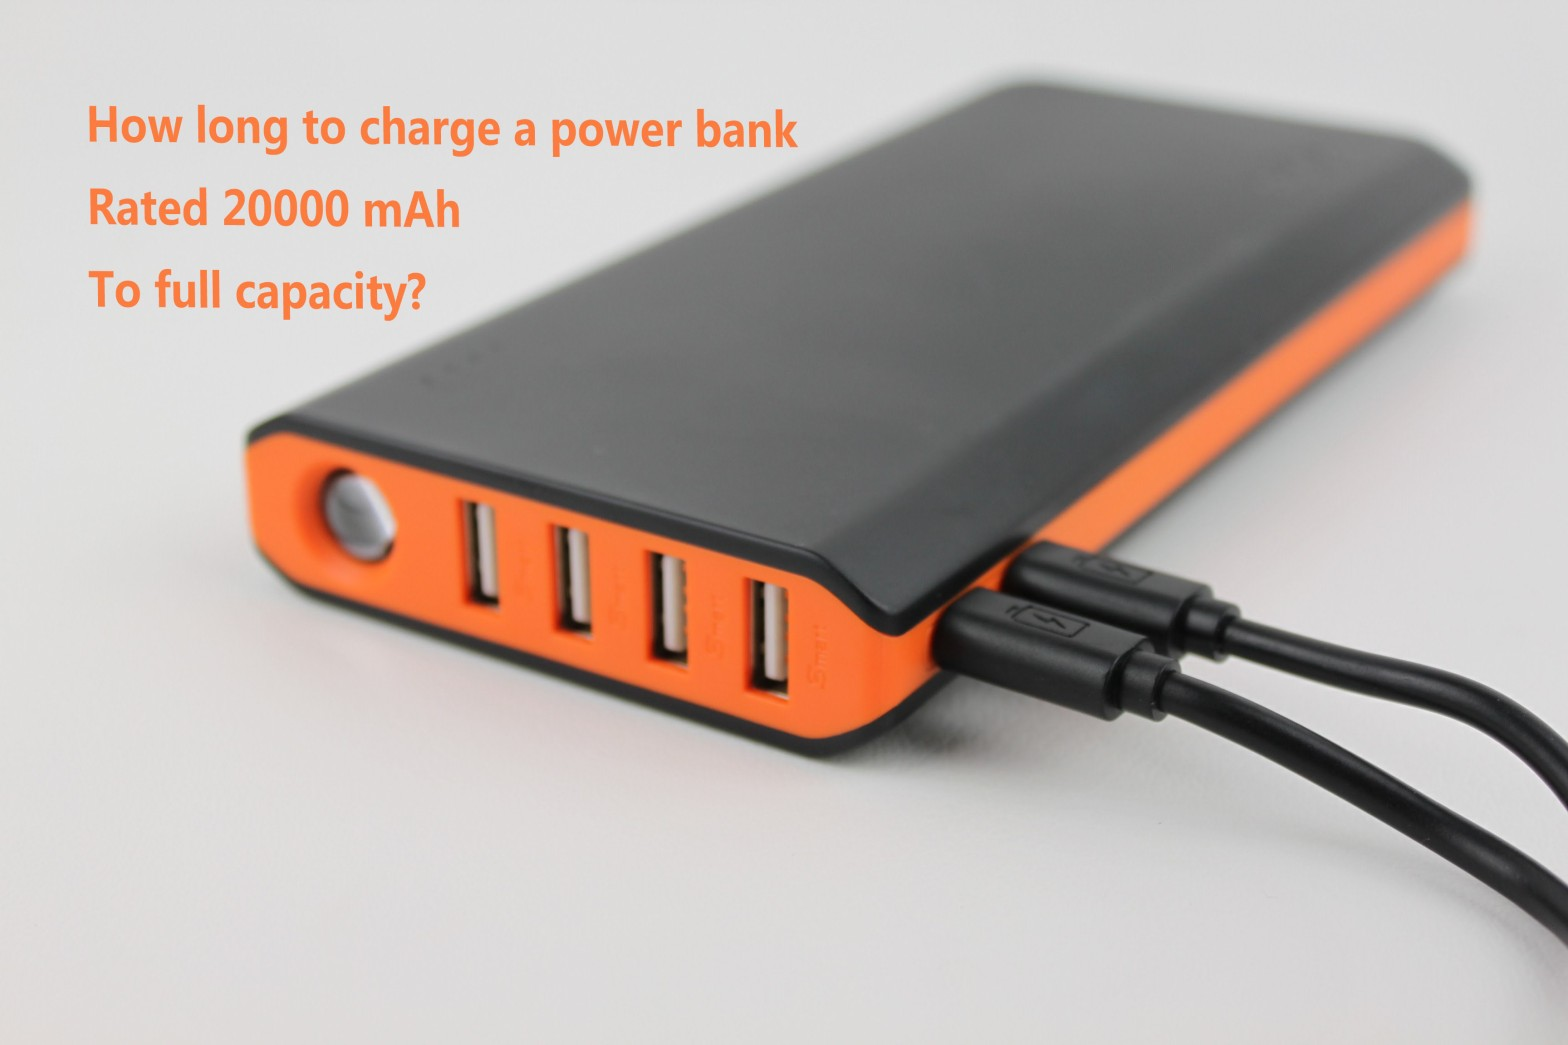 How_long_to_charge_power_bank_20000